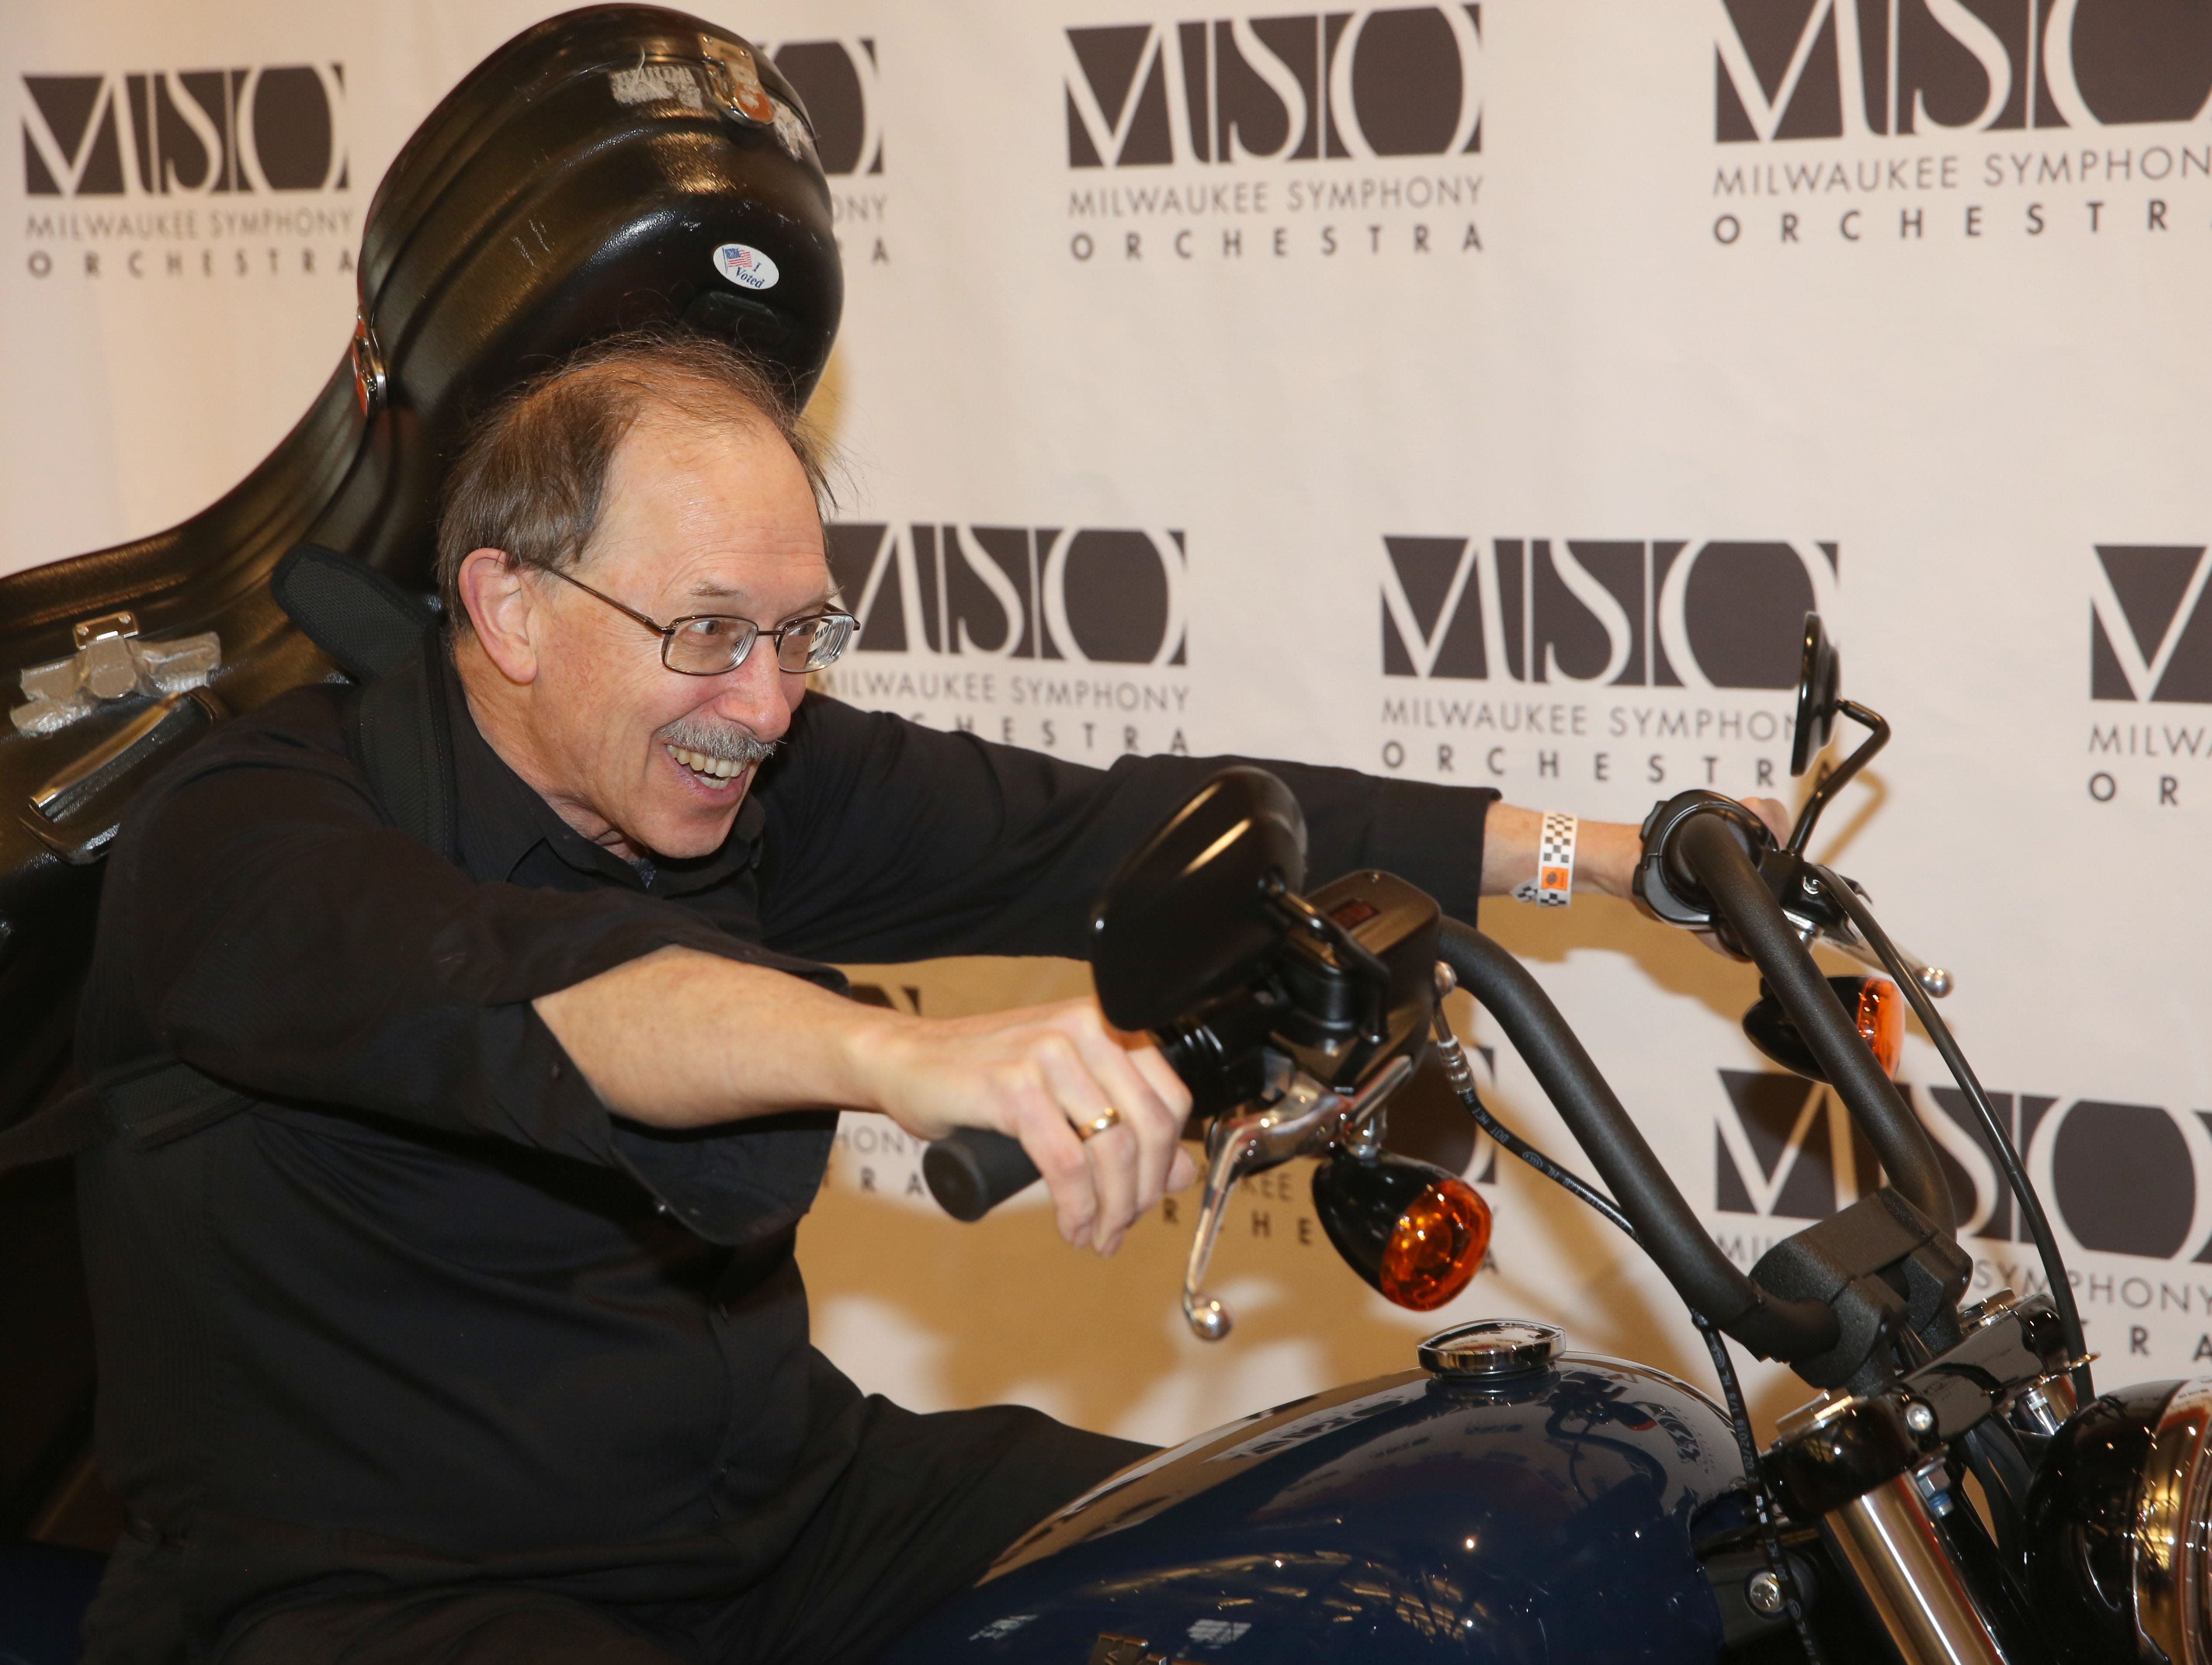 Cellist Gregory Matthews poses on a motorcycle before the Milwaukee Symphony's Secret Symphony performance at the Harley-Davidson Museum Sunday.